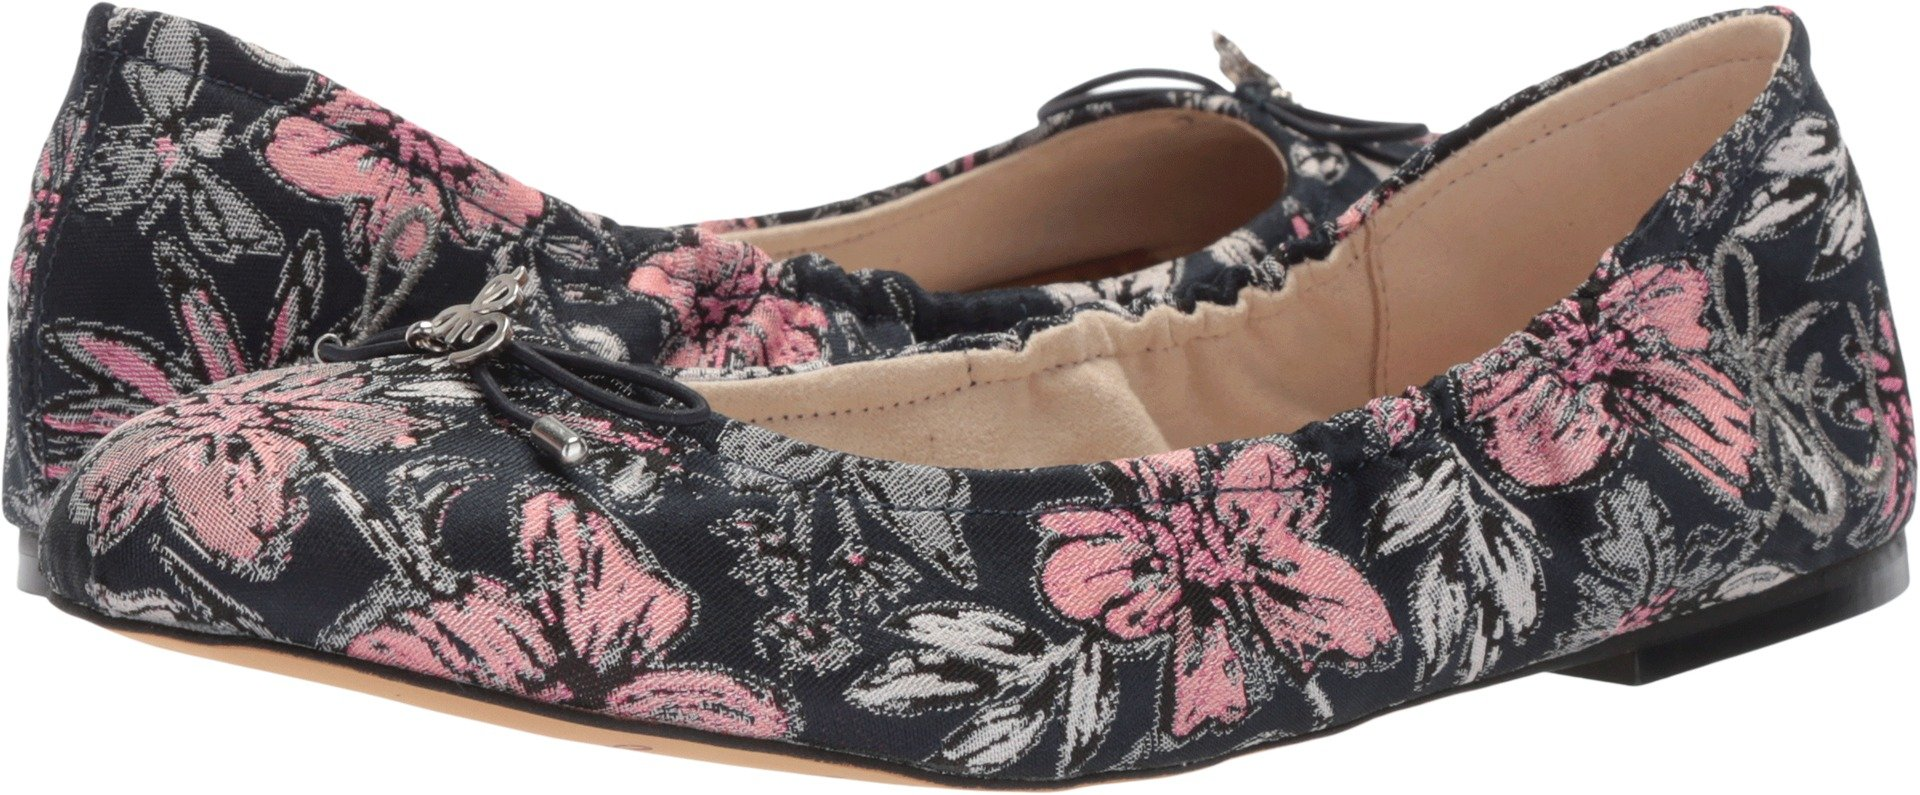 Sam Edelman Women's Felicia Navy Multi Secret Garden Jacquard Fabric 7 W US